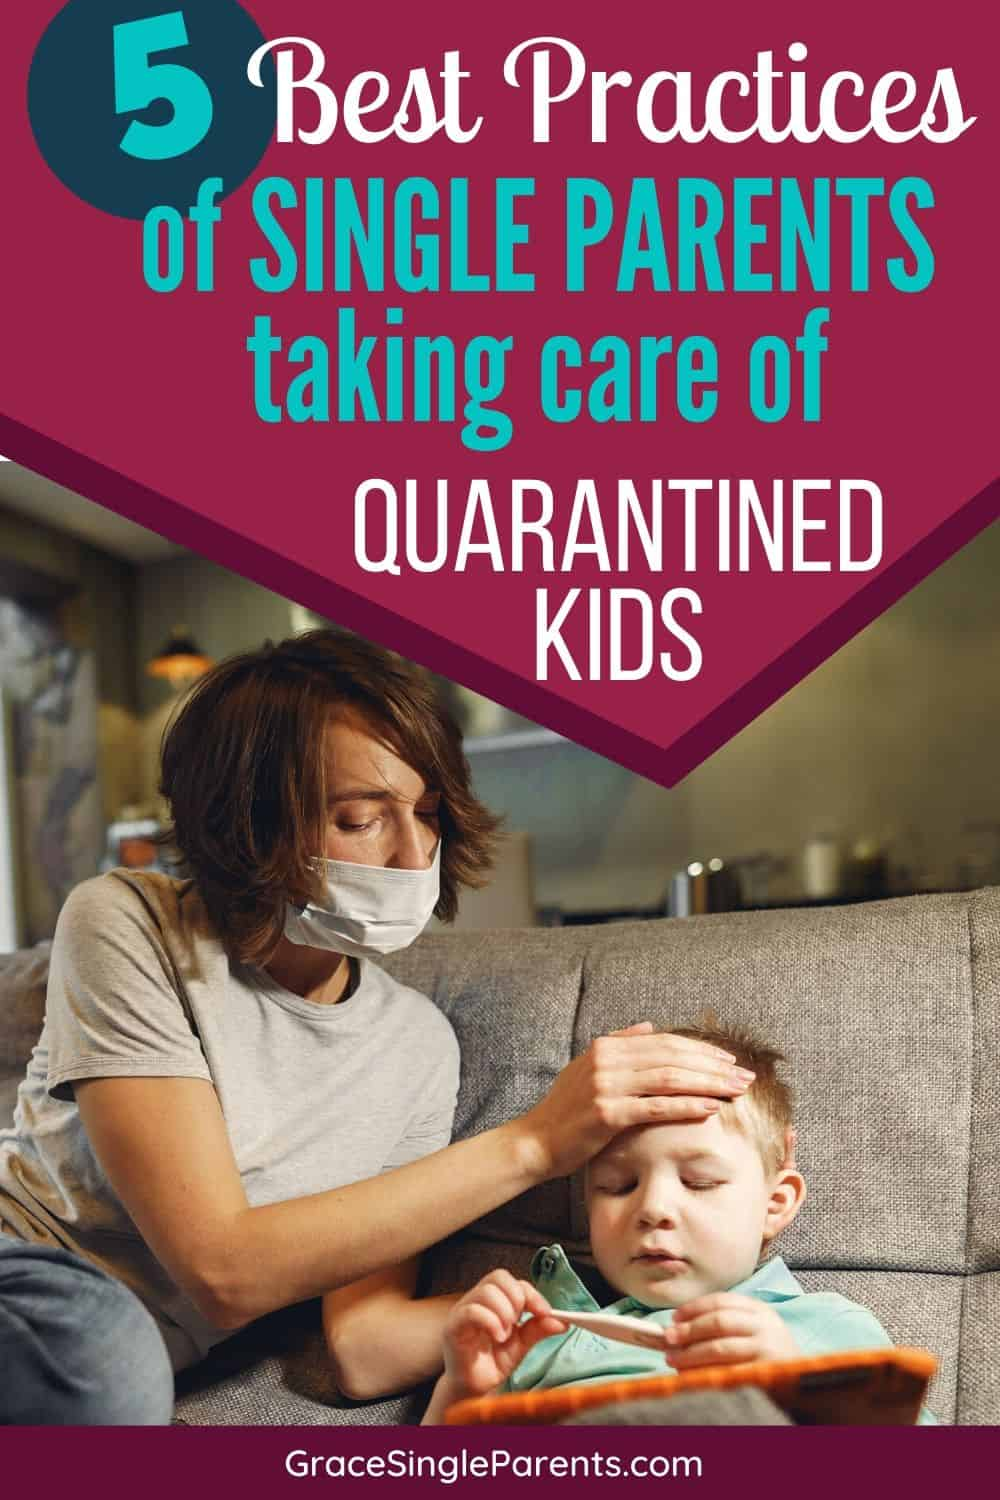 5 Best Practices for Single Parents Taking Care of Quarantined Kids